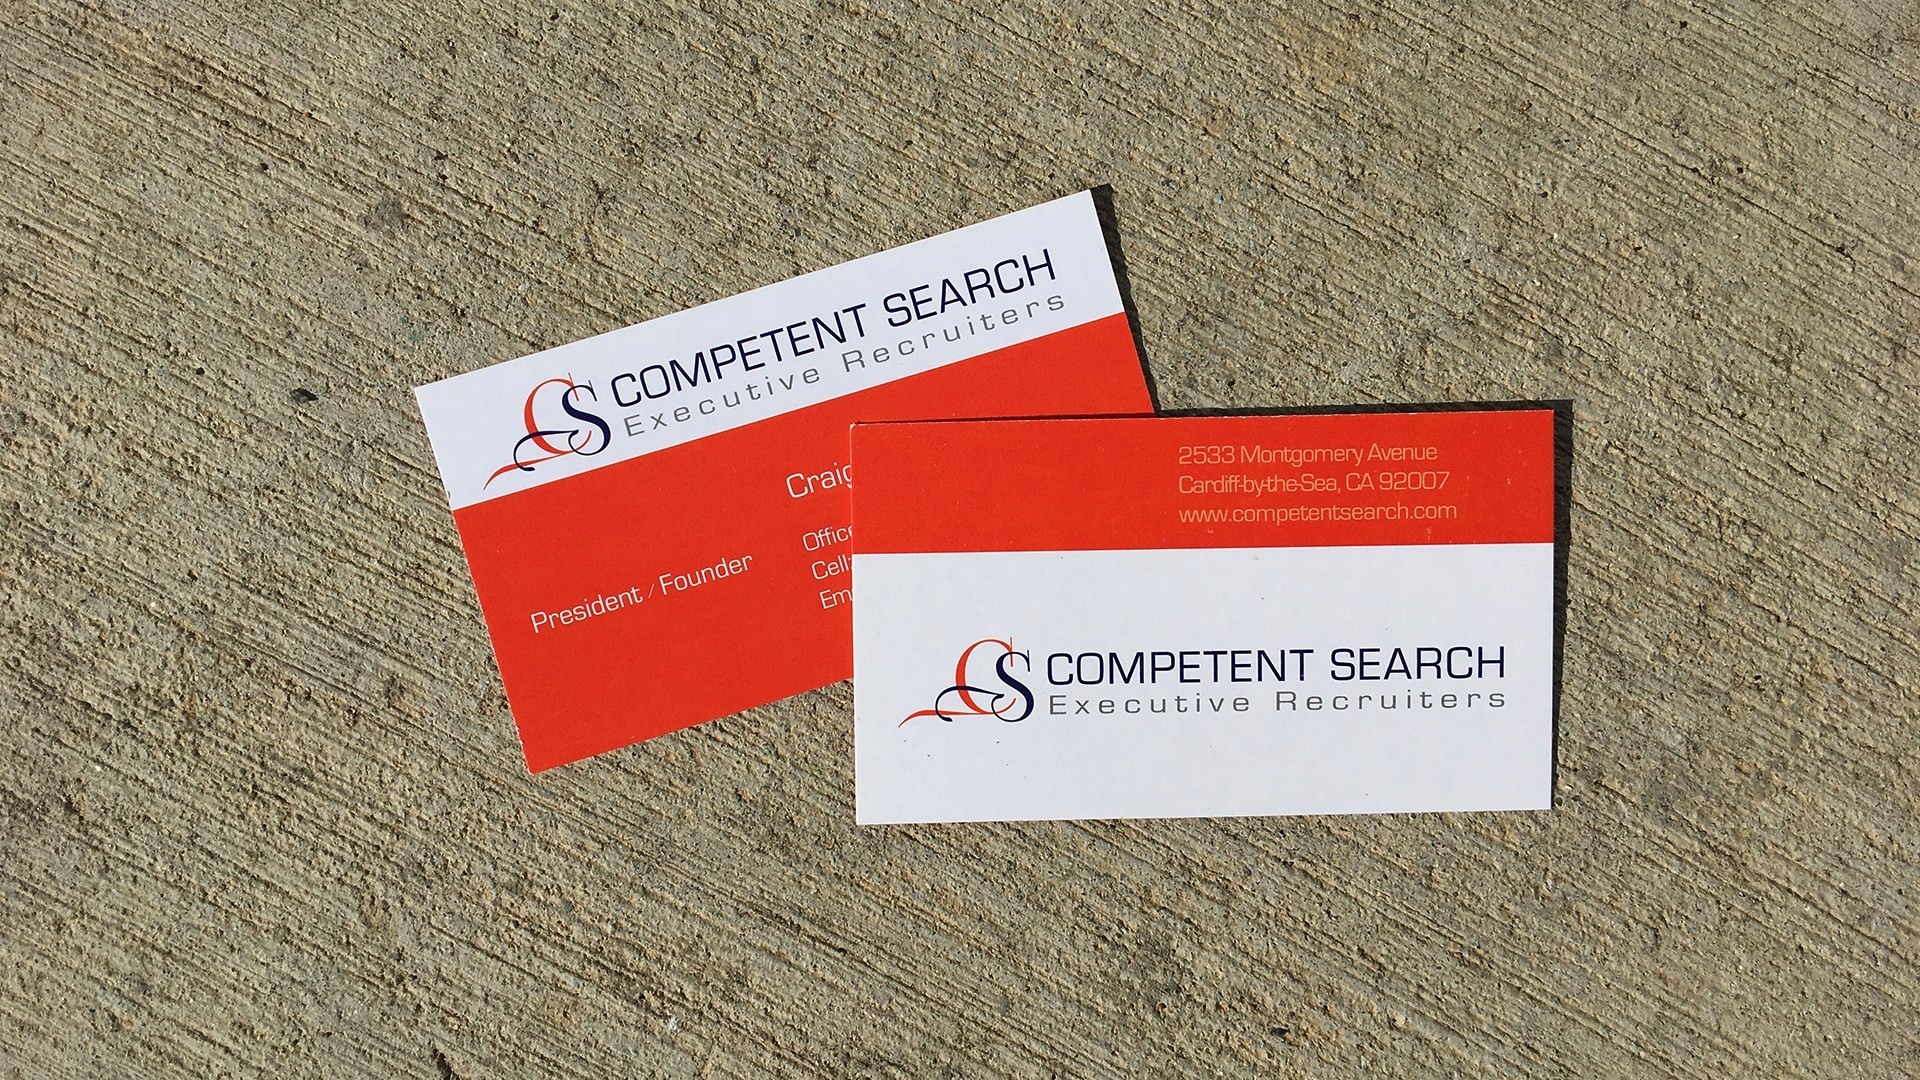 Competent Search